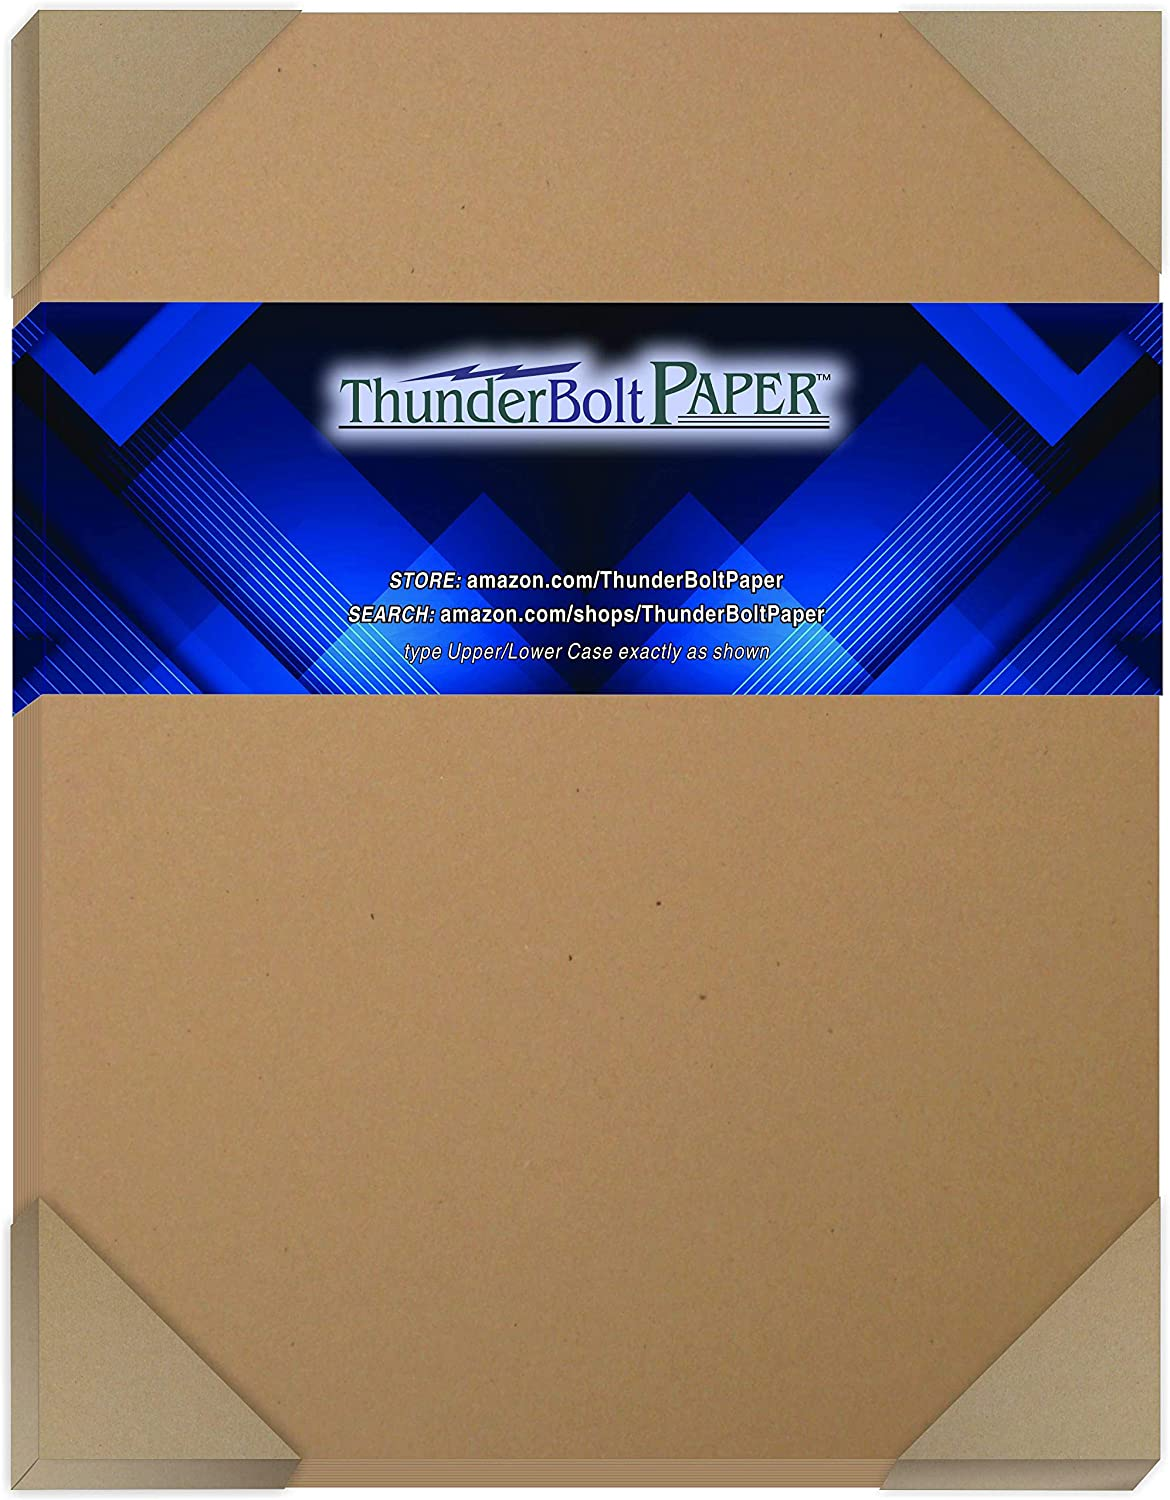 25 Brown Kraft Fiber 80# Cover Paper Sheets - 7X10 Inches Photo|Card|Frame Size -May Fold to 5X7 - Rich Earthy Color with Natural Fibers - 80lb/Pound Cardstock - Smooth Finish